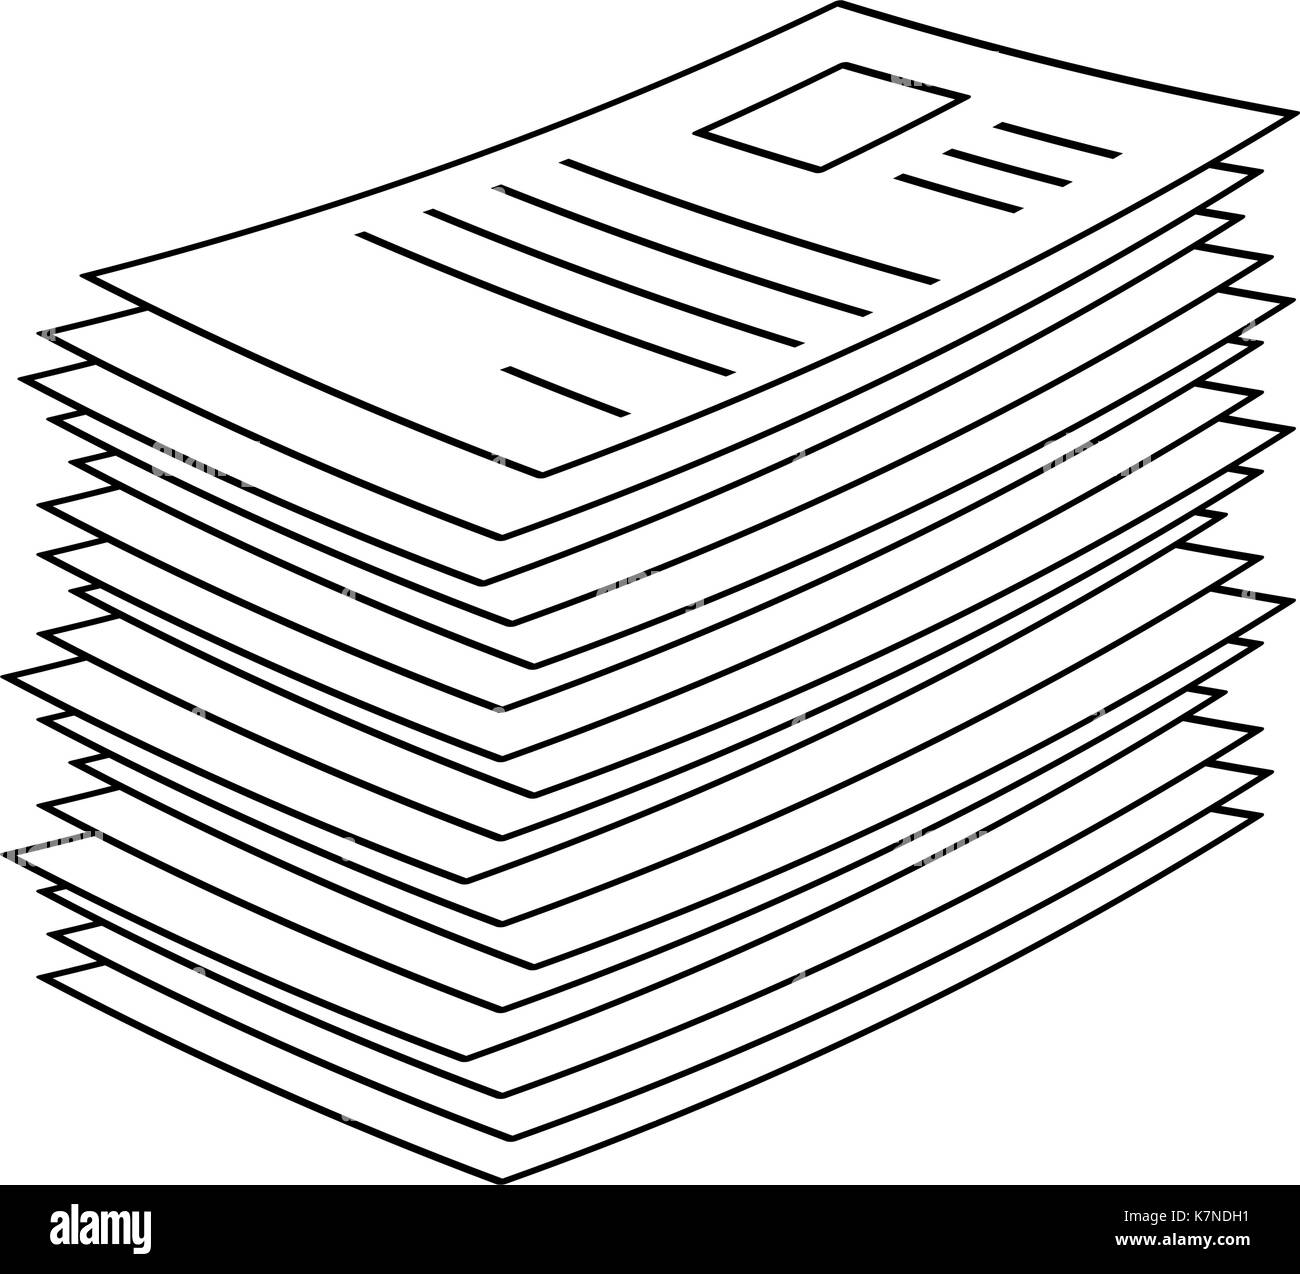 heap, stack of paper document file web icon vector symbol icon stock